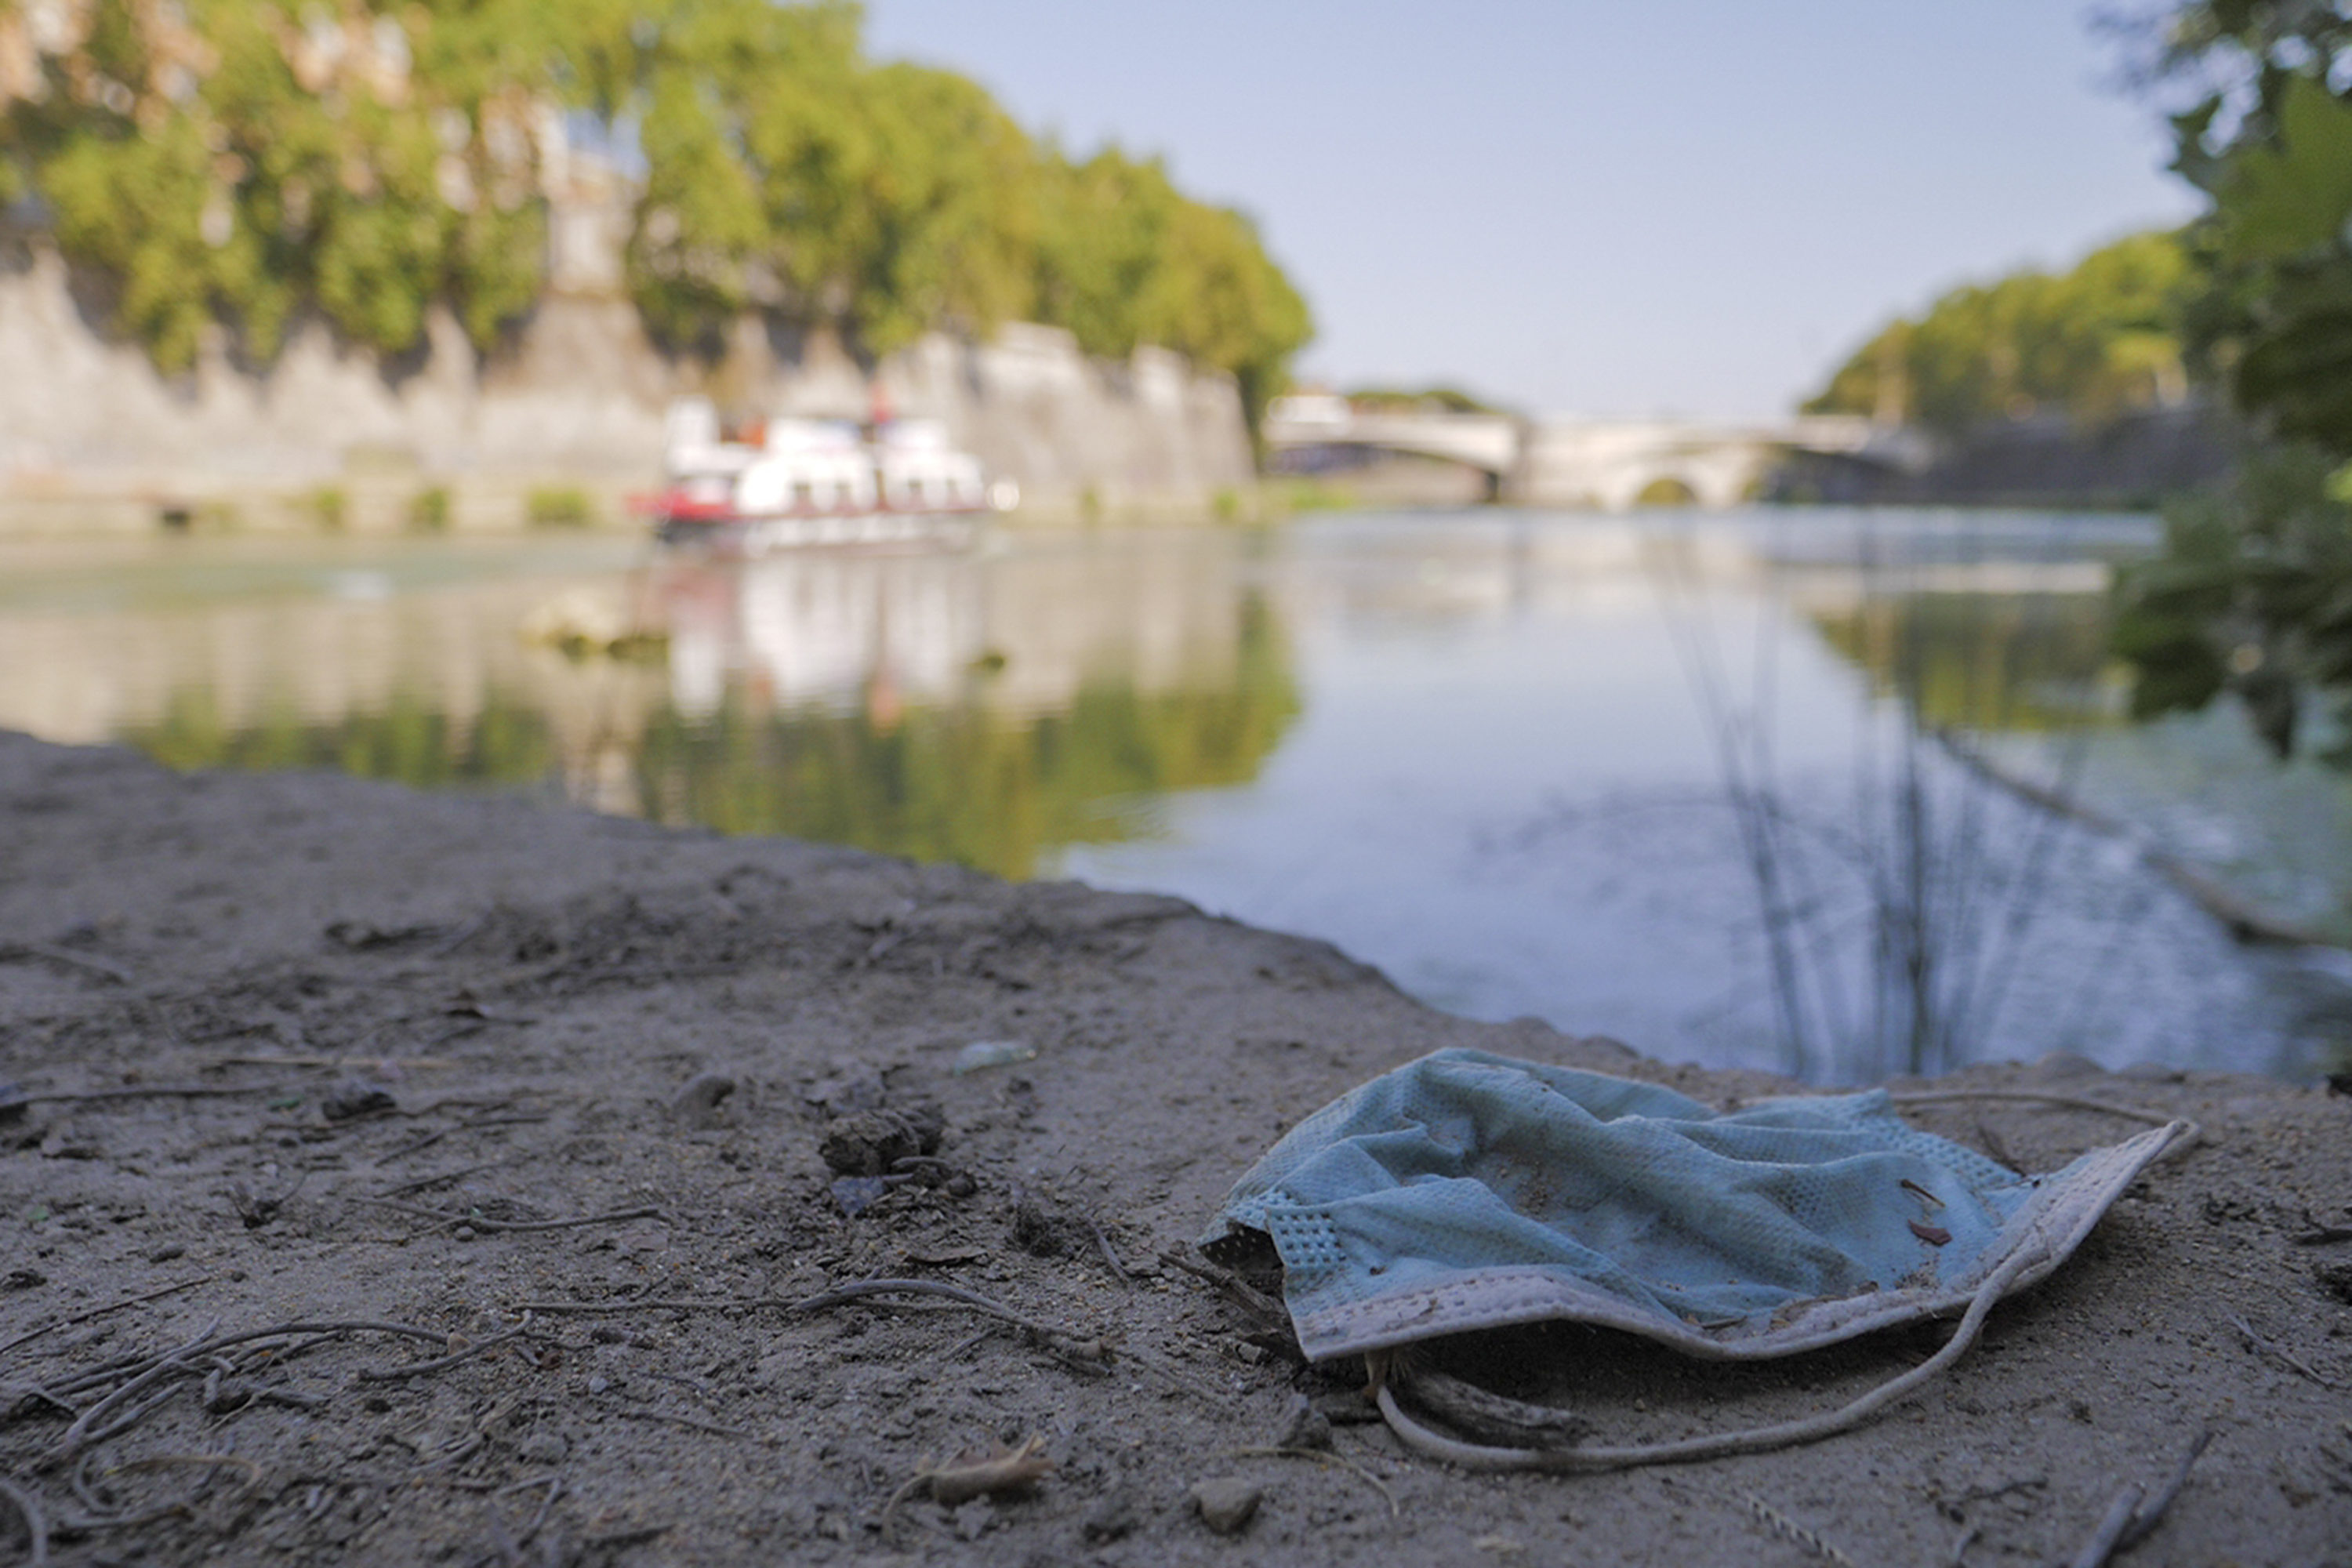 A face mask thrown on the ground. (Paolo Santalucia/AP)